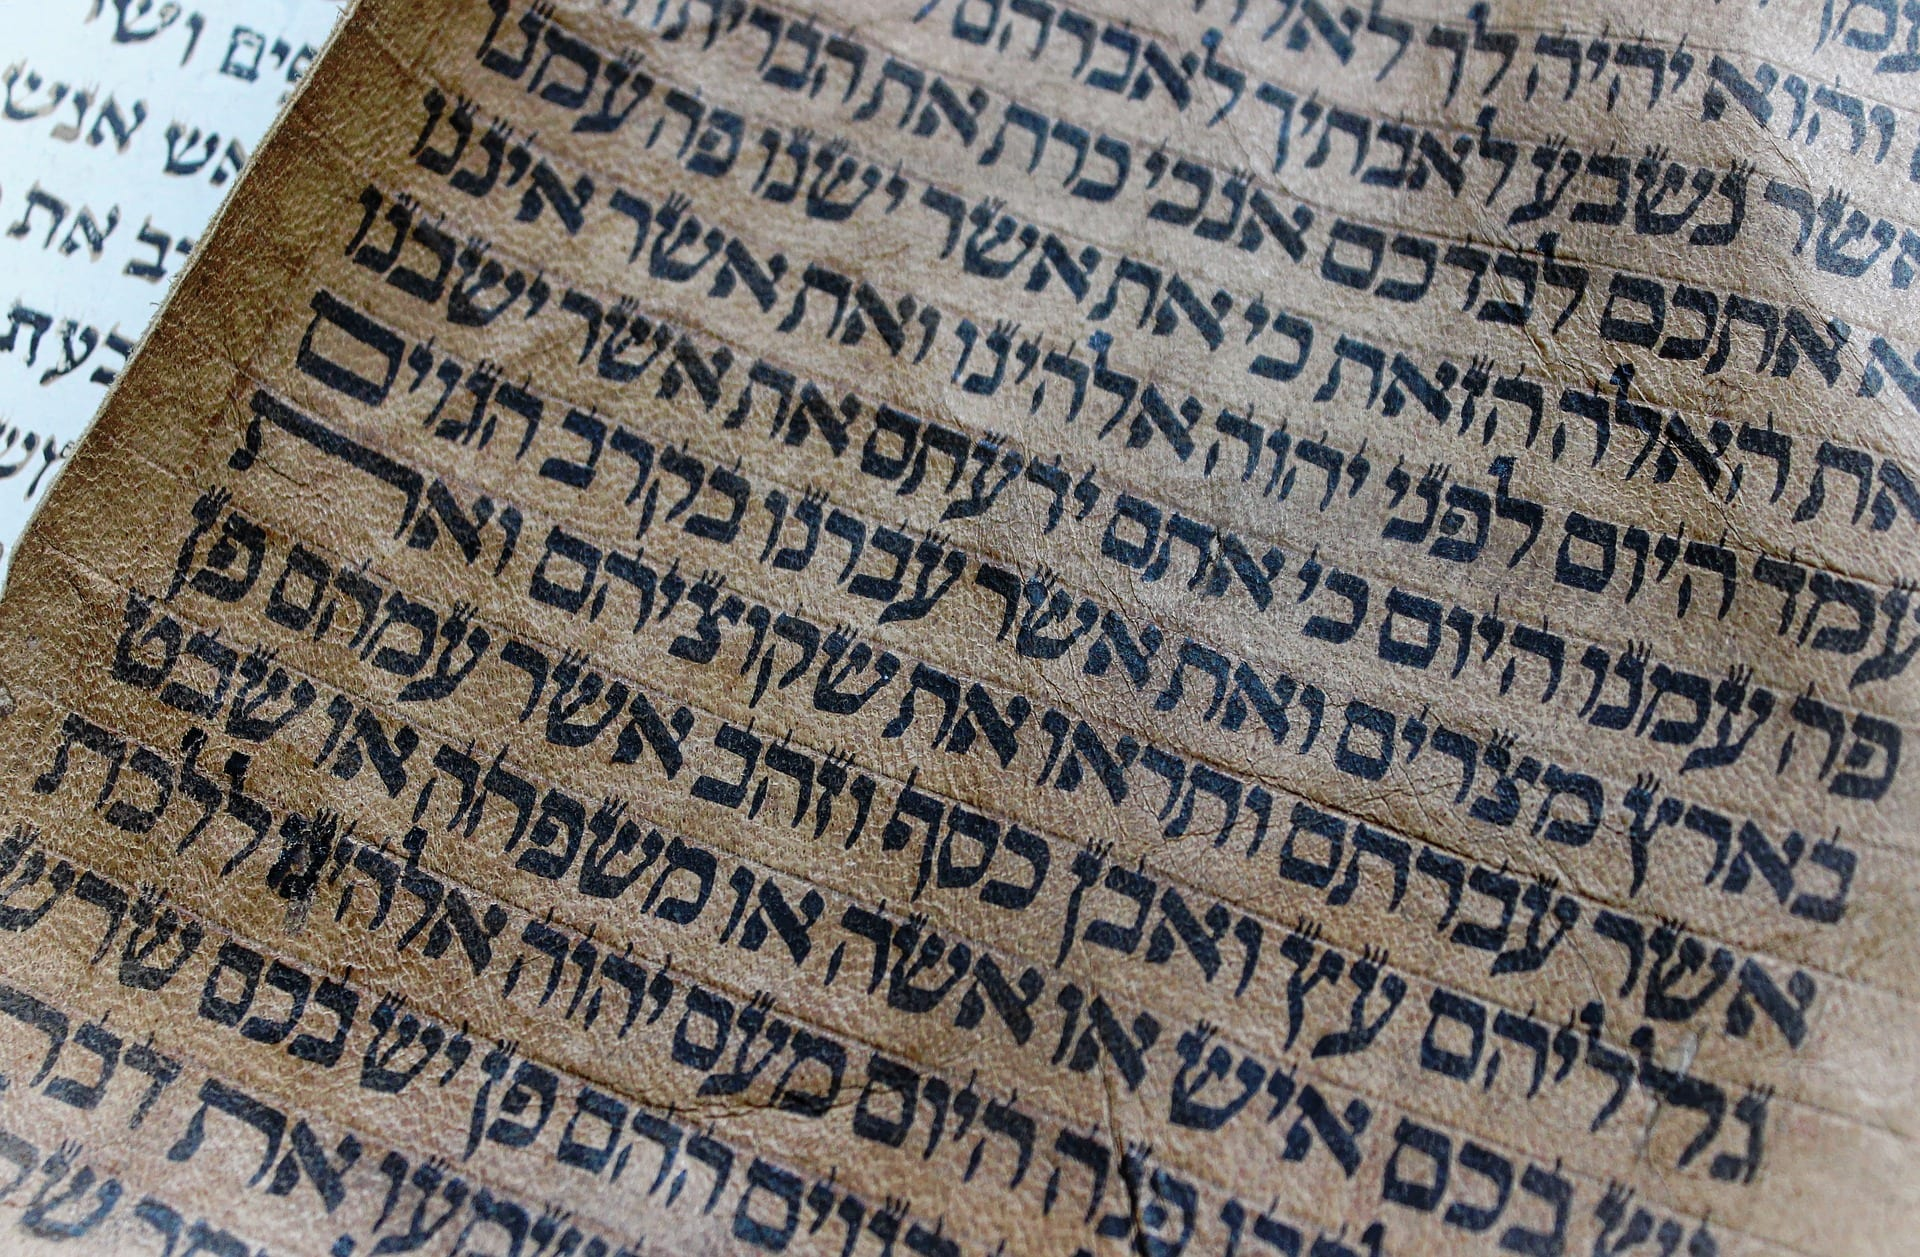 5 Things You Need To Know Before You Learn To Read Hebrew